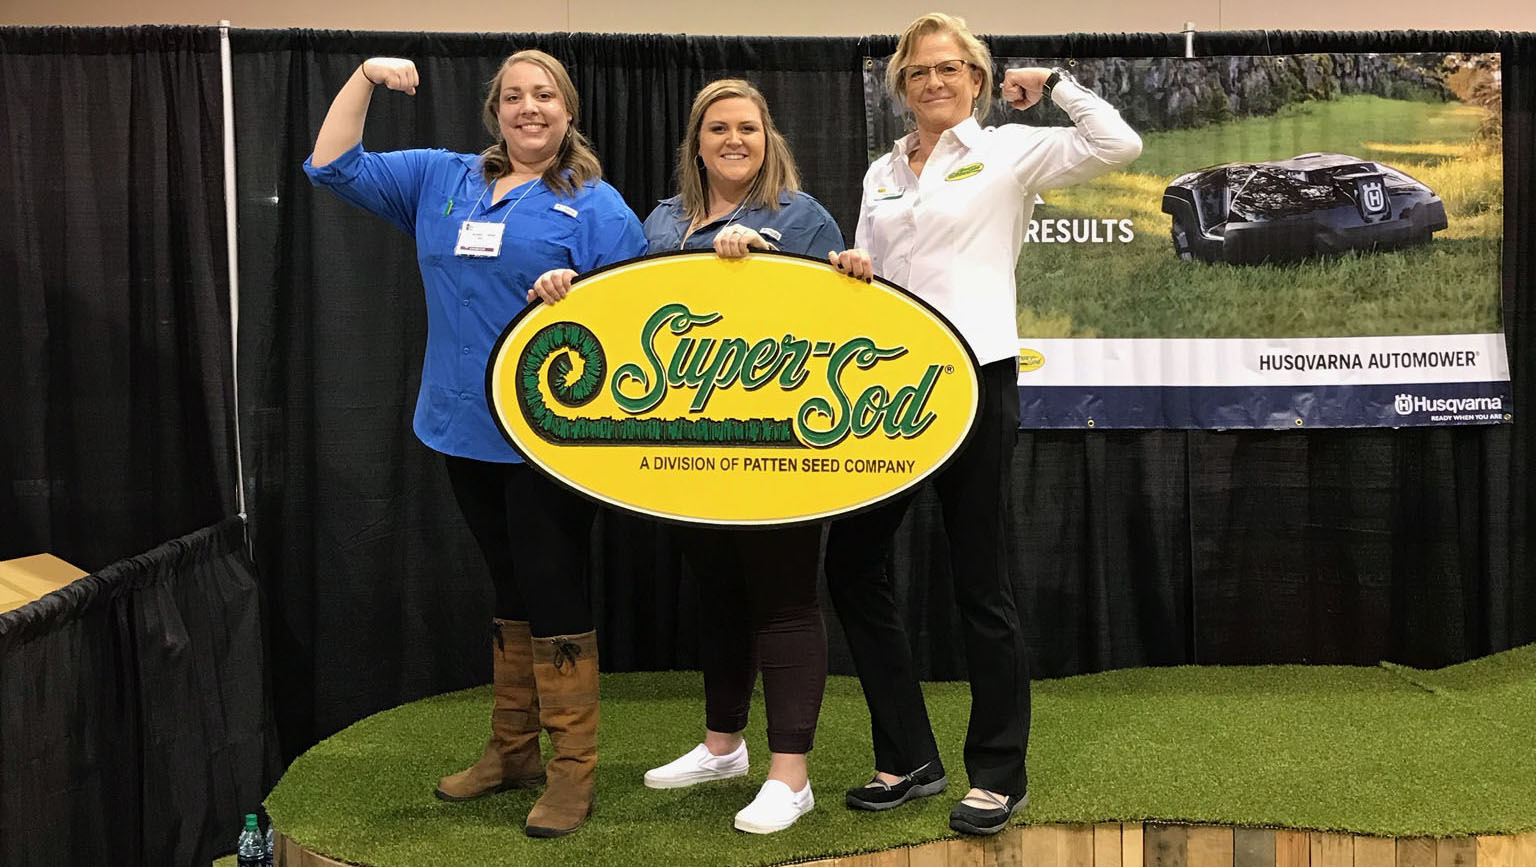 Super-Sod Named Top Workplace by Atlanta Journal Constitution - featured image